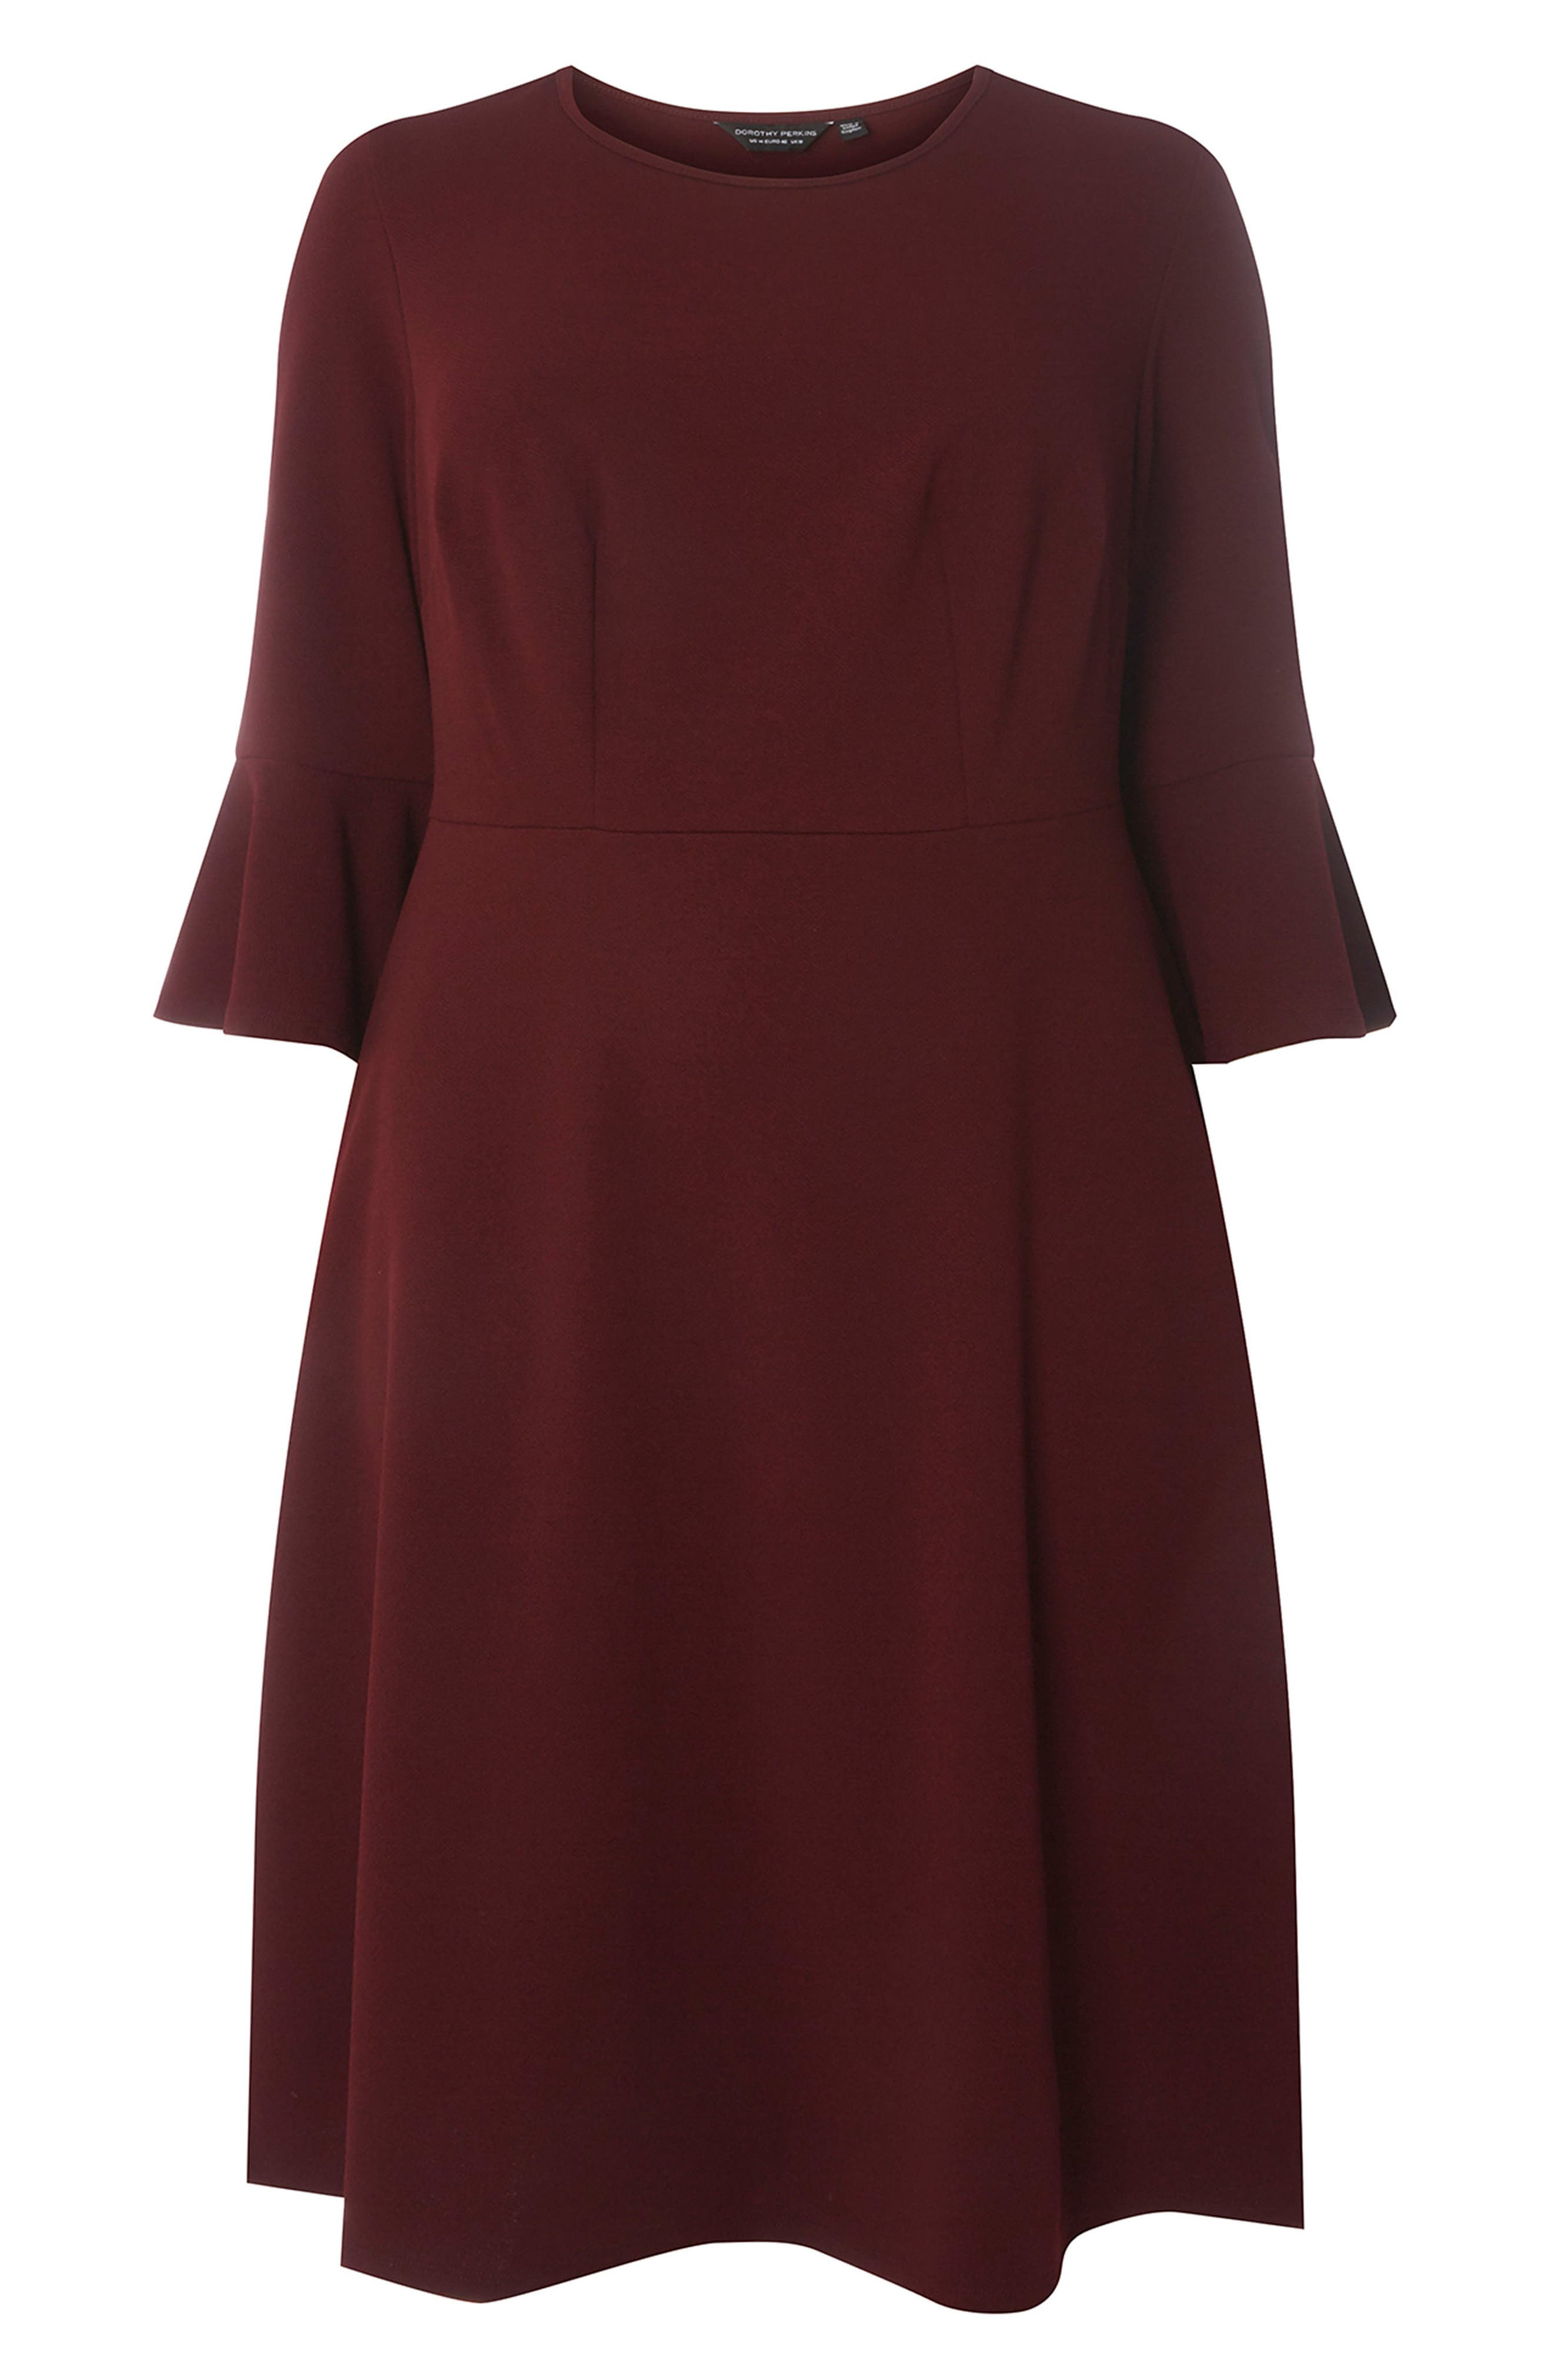 Ruffle Sleeve Fitted Dress,                             Alternate thumbnail 4, color,                             600